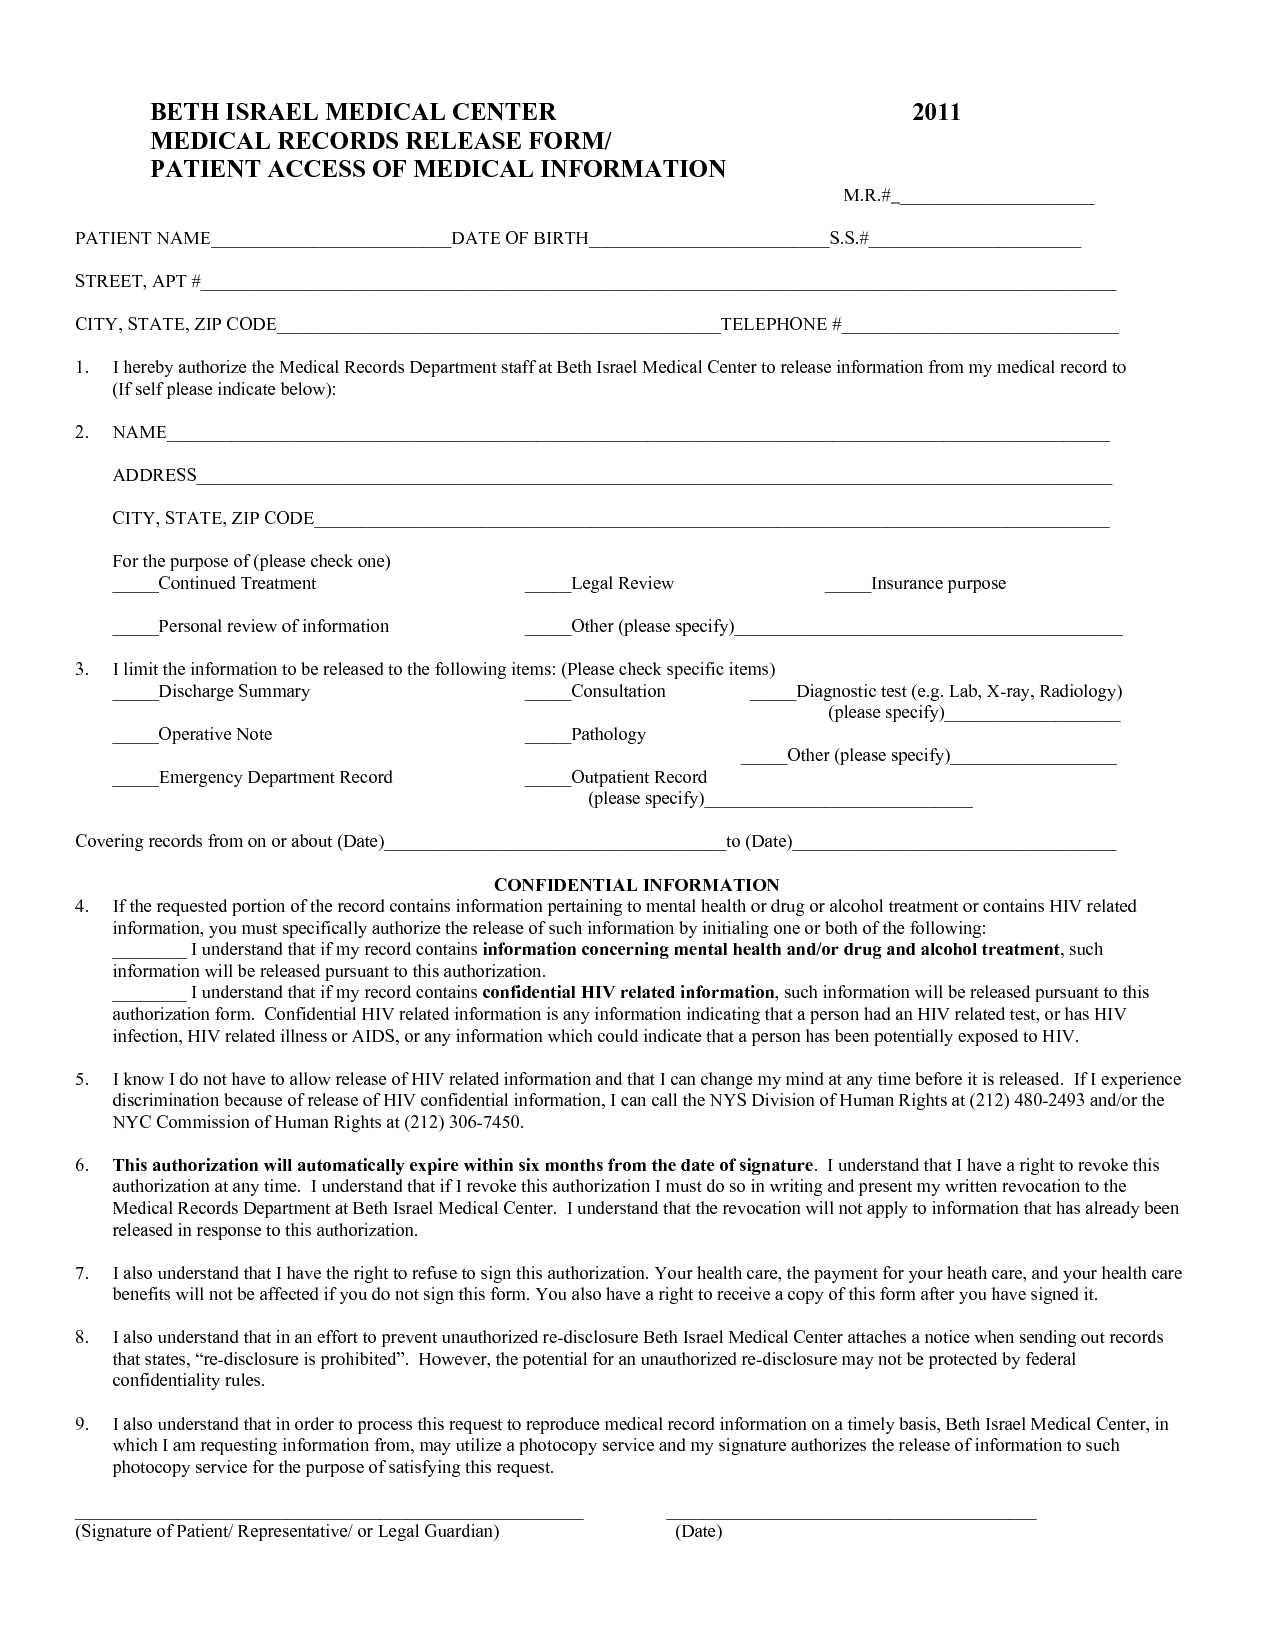 Medical Record Spreadsheet Regarding New Medical History And Physical Template Hm49 Documentaries For